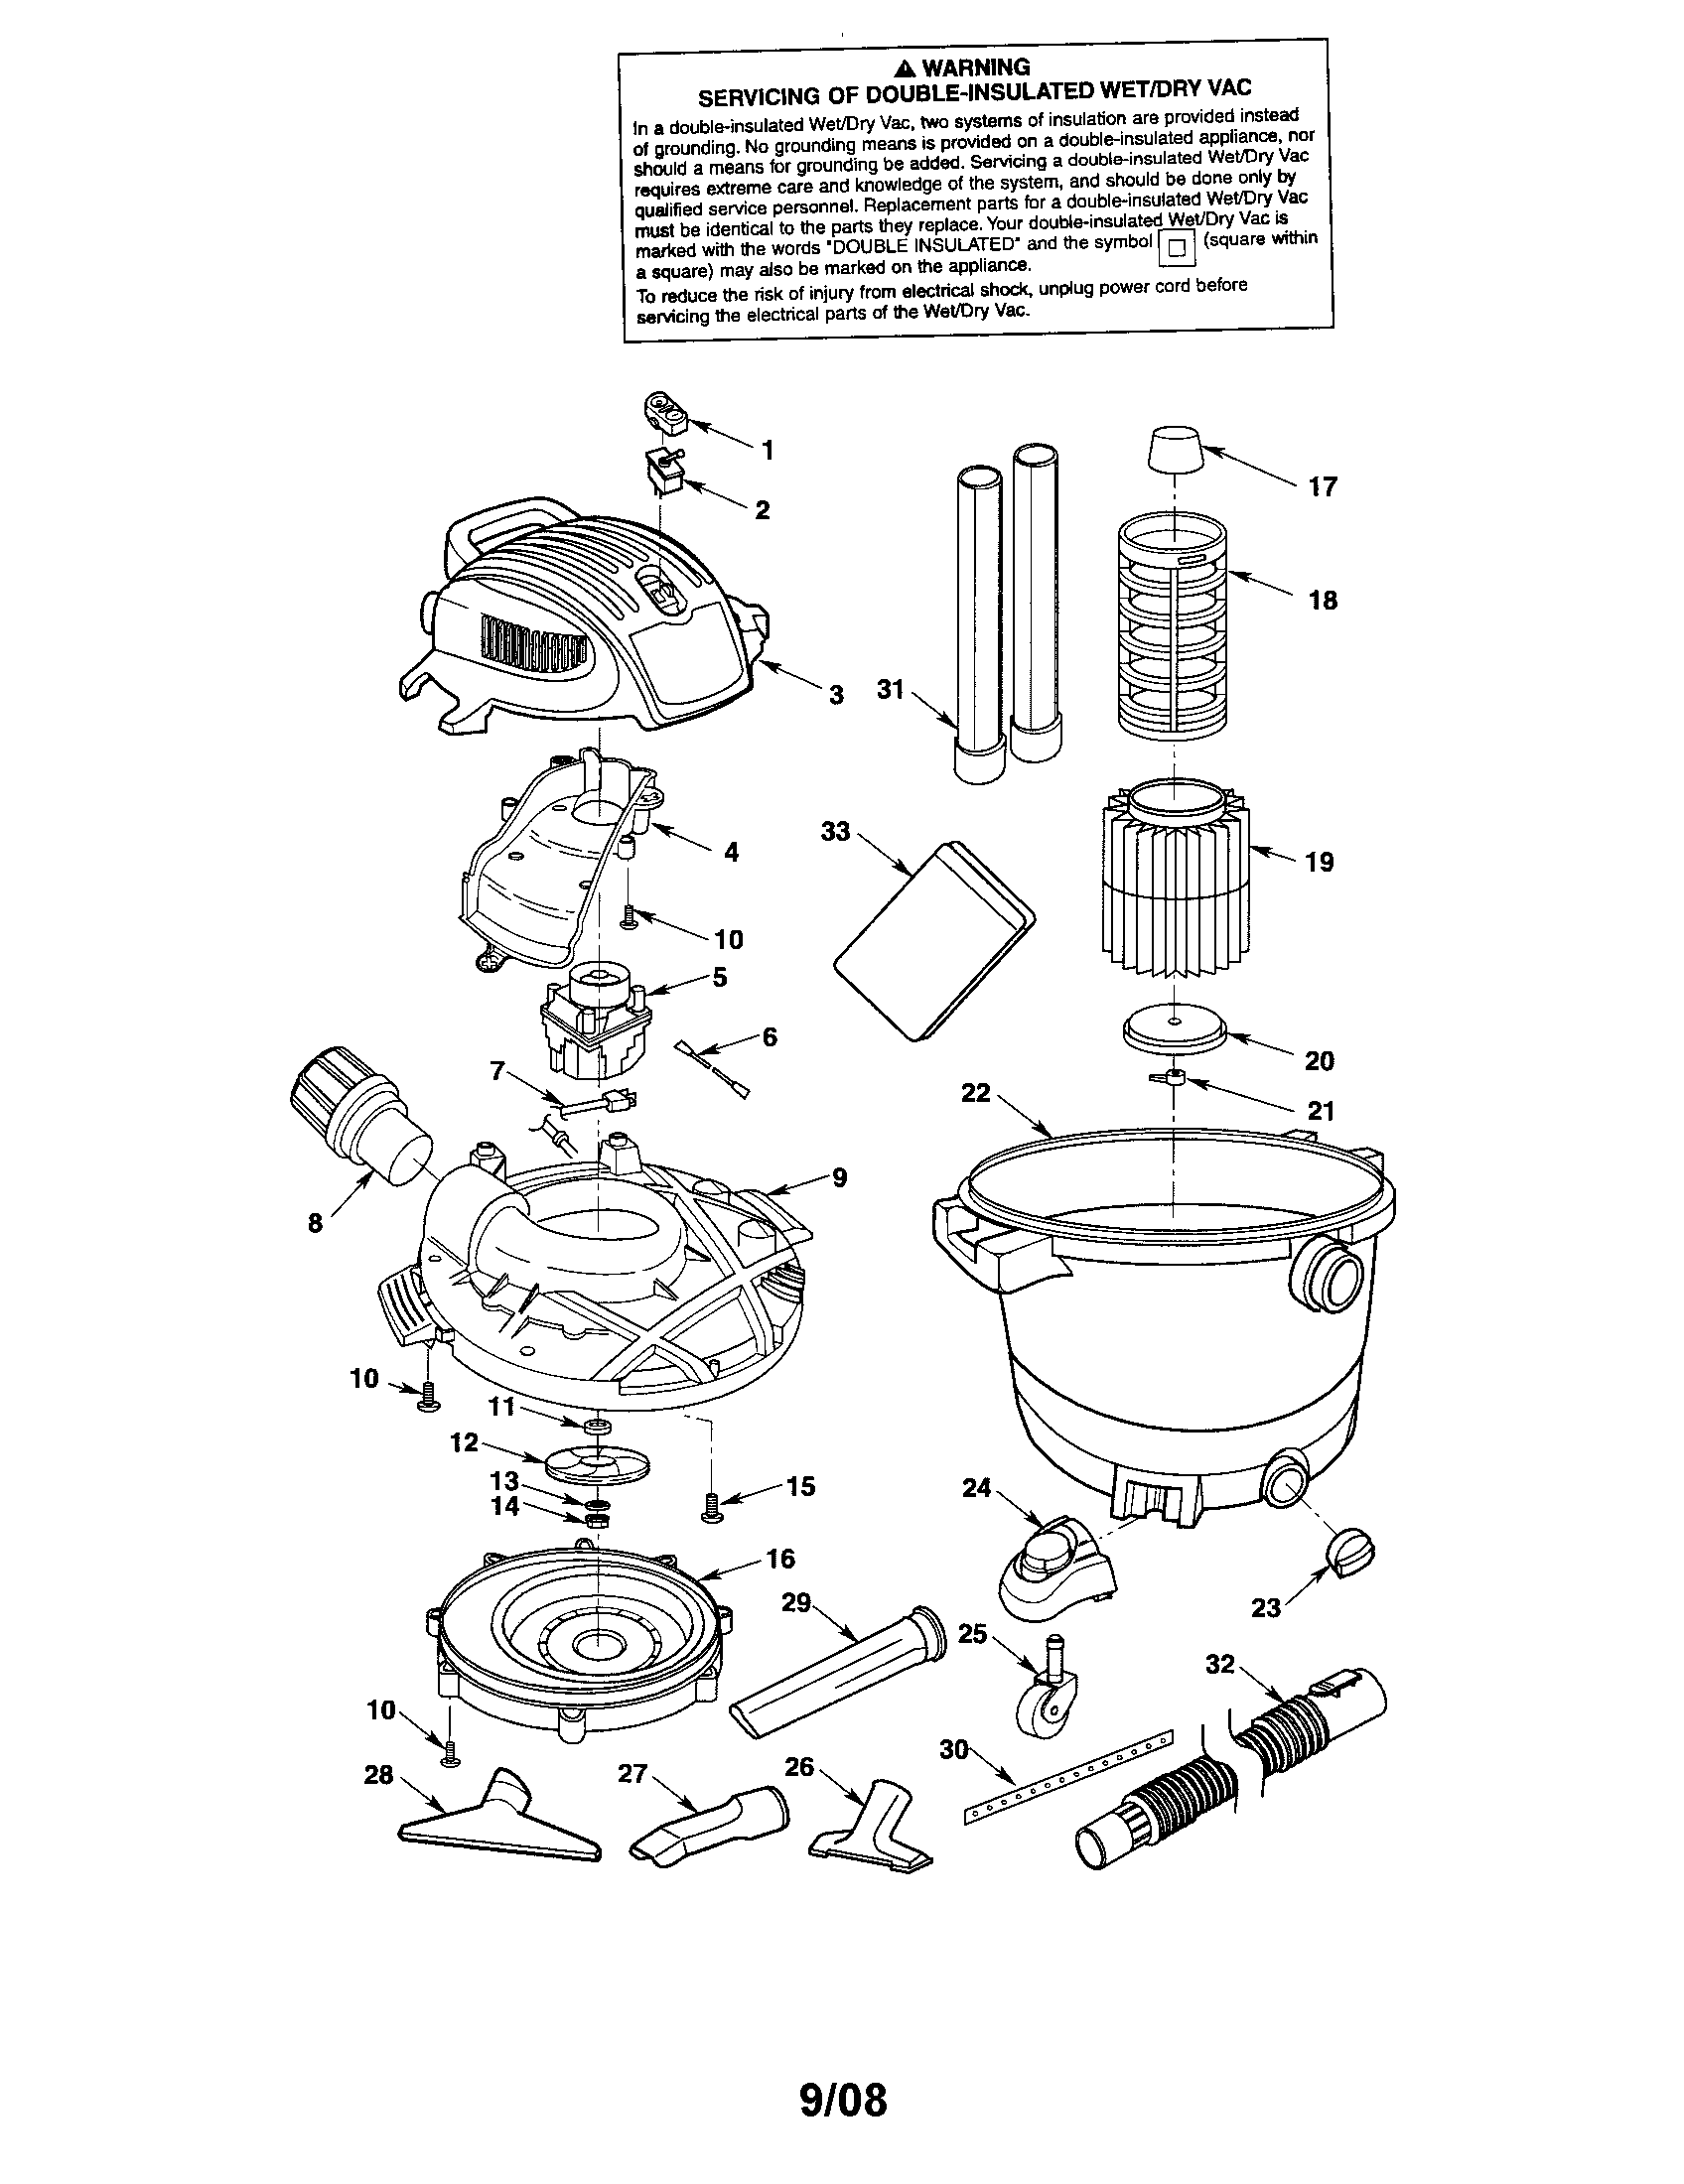 WET/DRY VAC Diagram & Parts List for Model 113177621